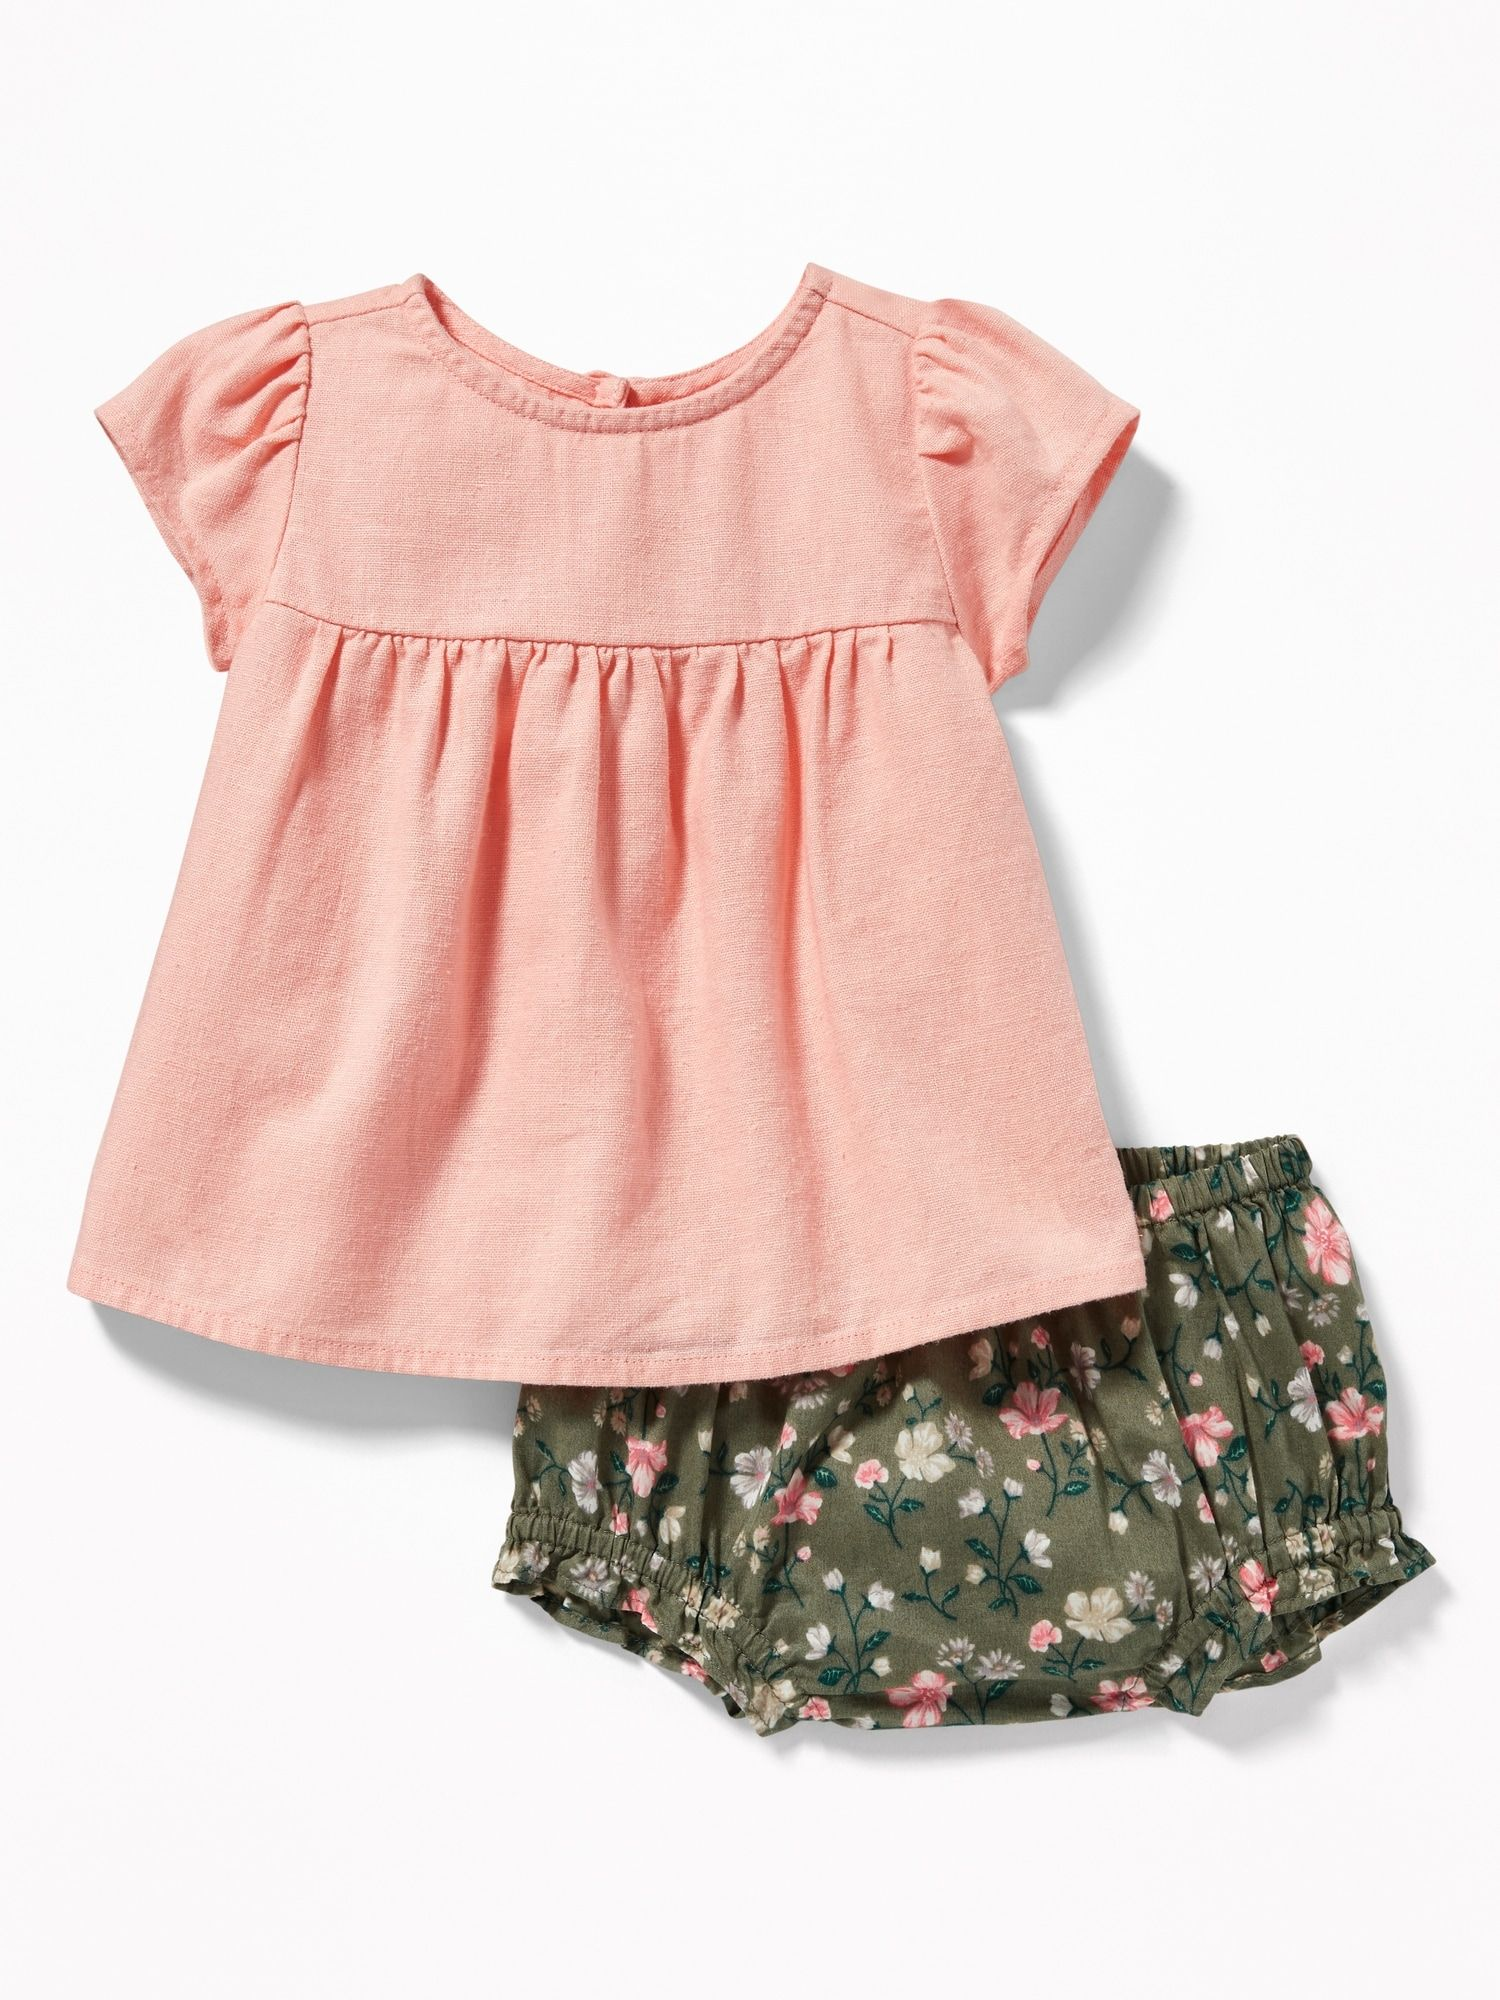 2285217f8 Linen-Blend Top & Bloomers Set for Baby | baby girl | Disney baby ...